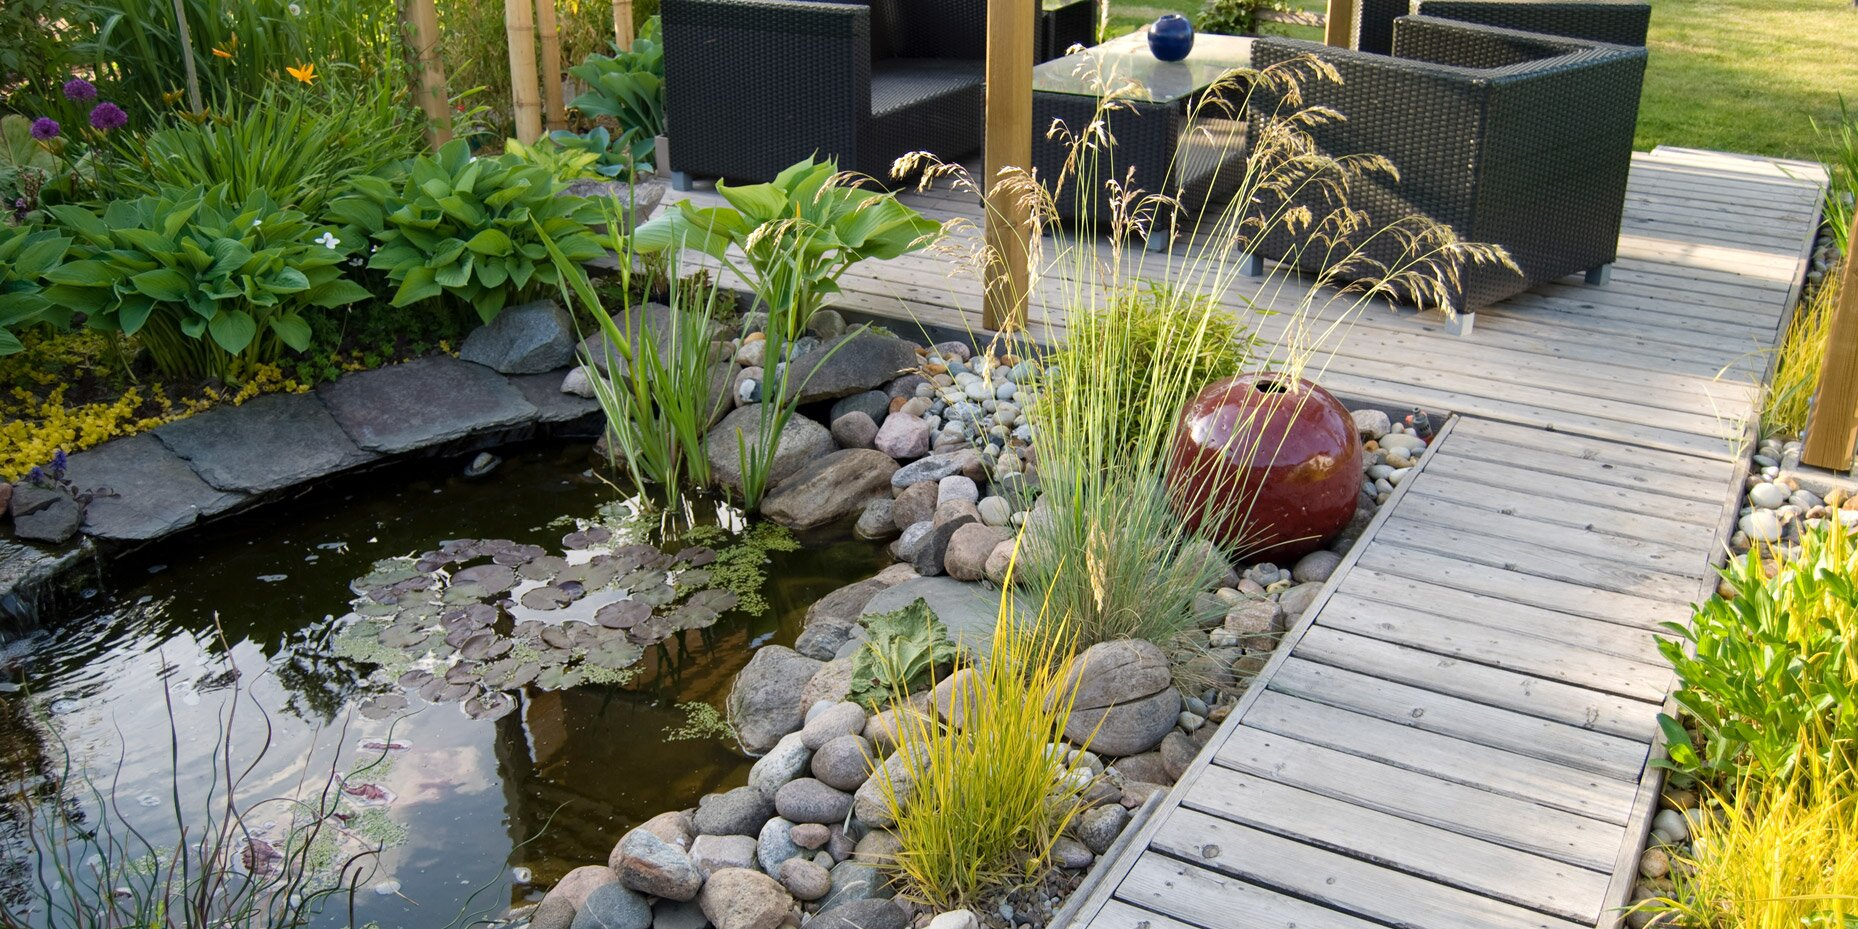 How to Build a Pond in Your Backyard